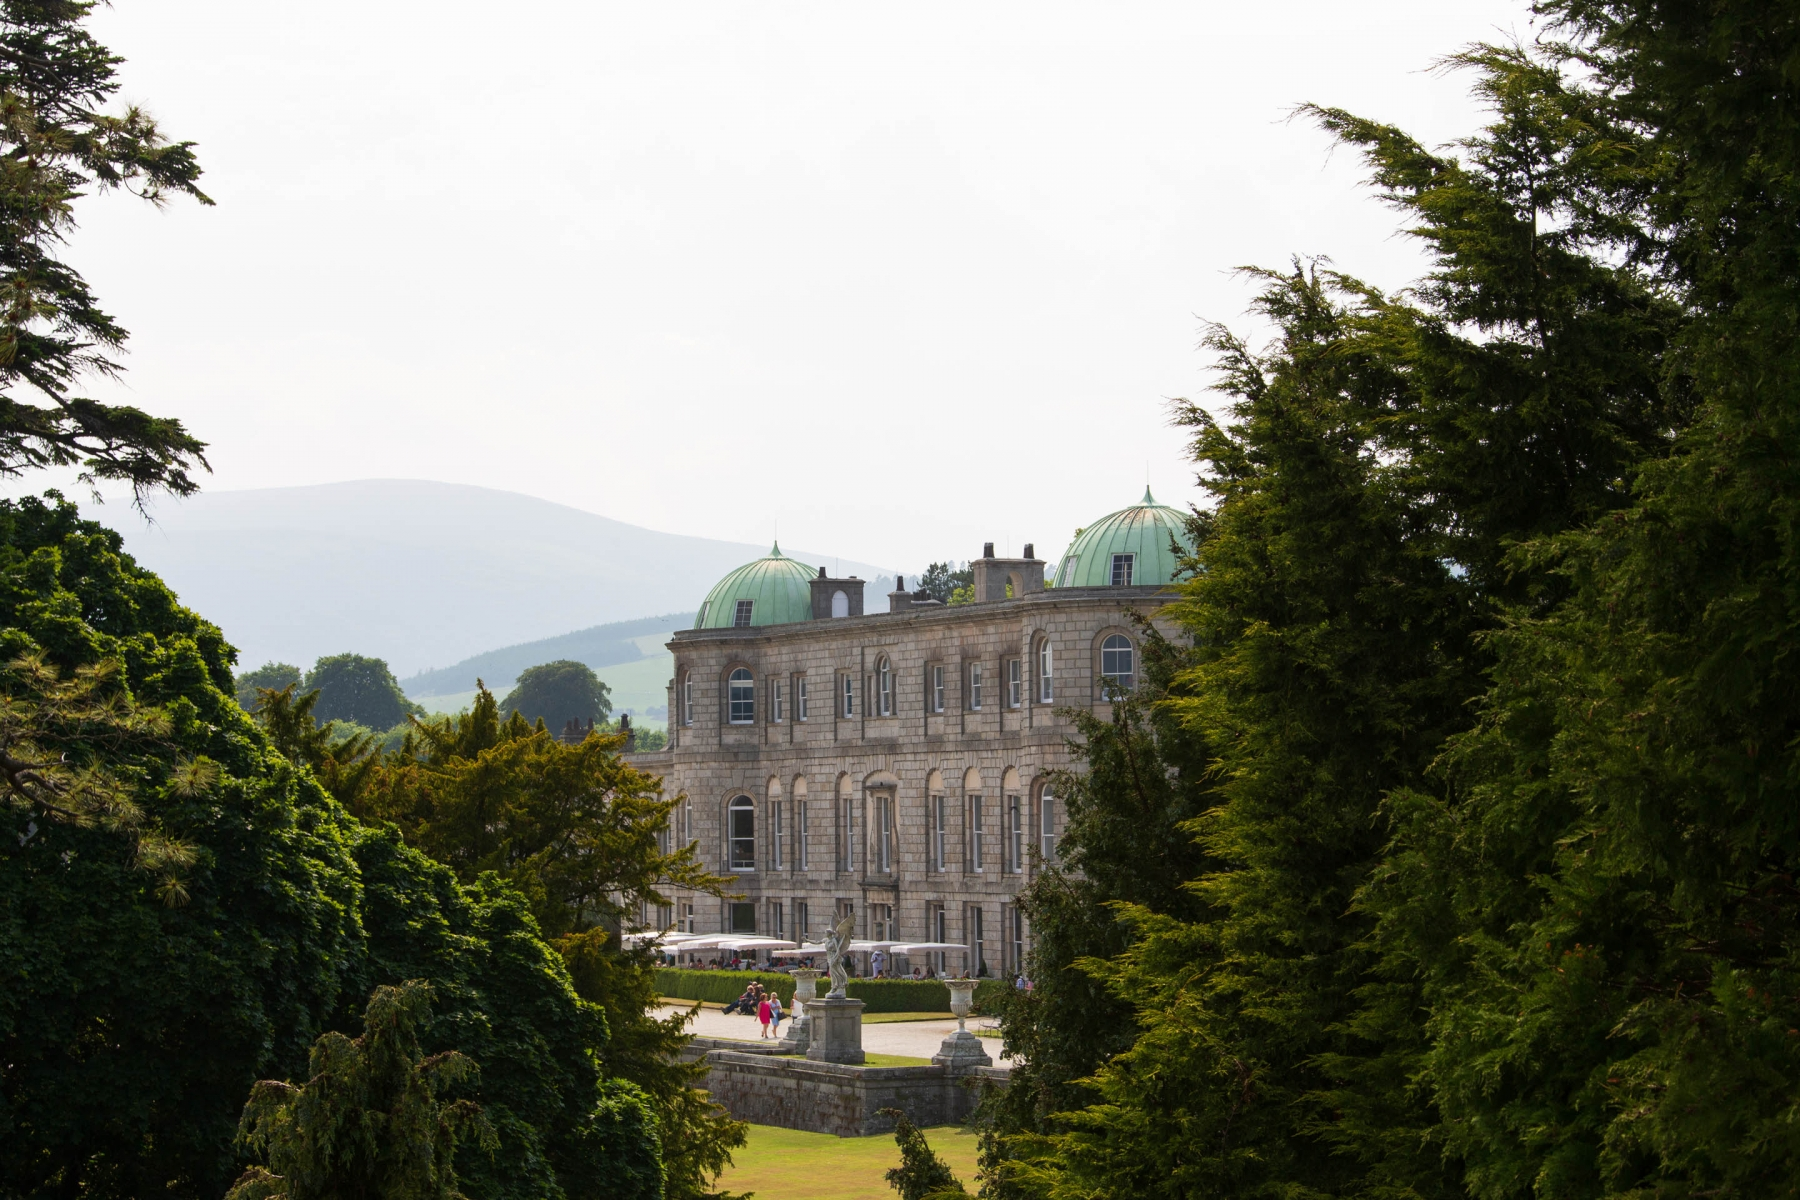 And finally a glimpse of the Powerscourt House from atop the tower. If you are tired of walking around Dublin, I highly recommend spending an afternoon here.